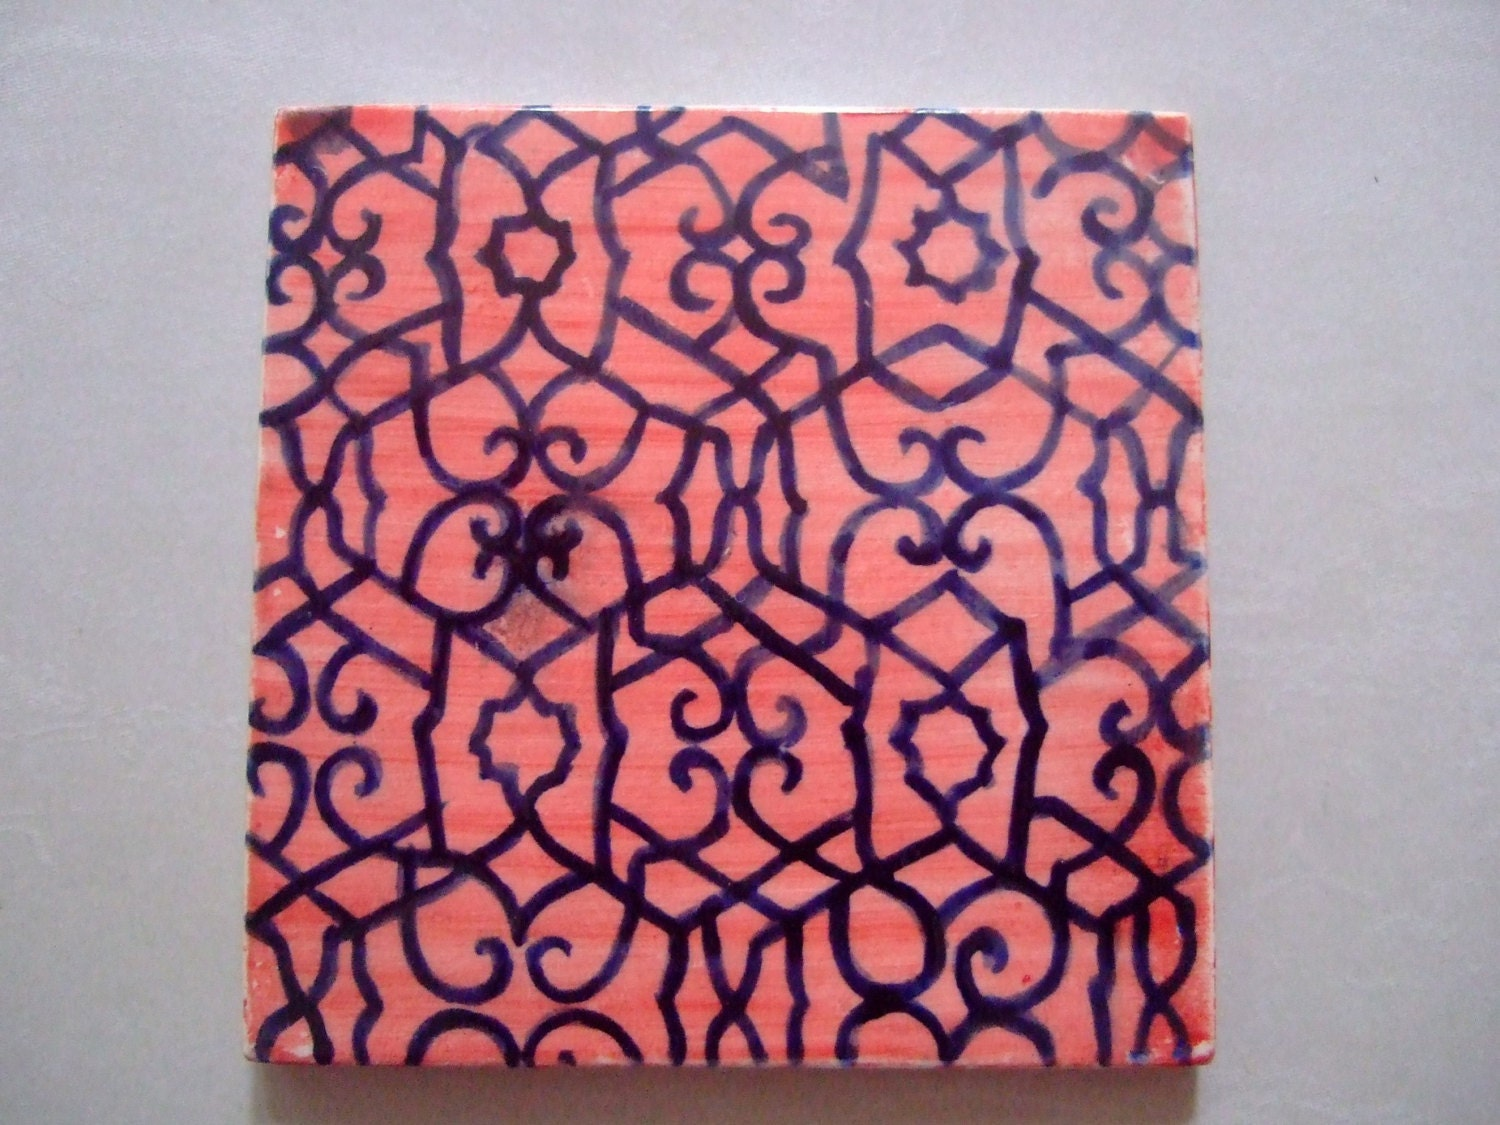 Handpainted Ceramic Tile With Moroccan Design By Terethsheba